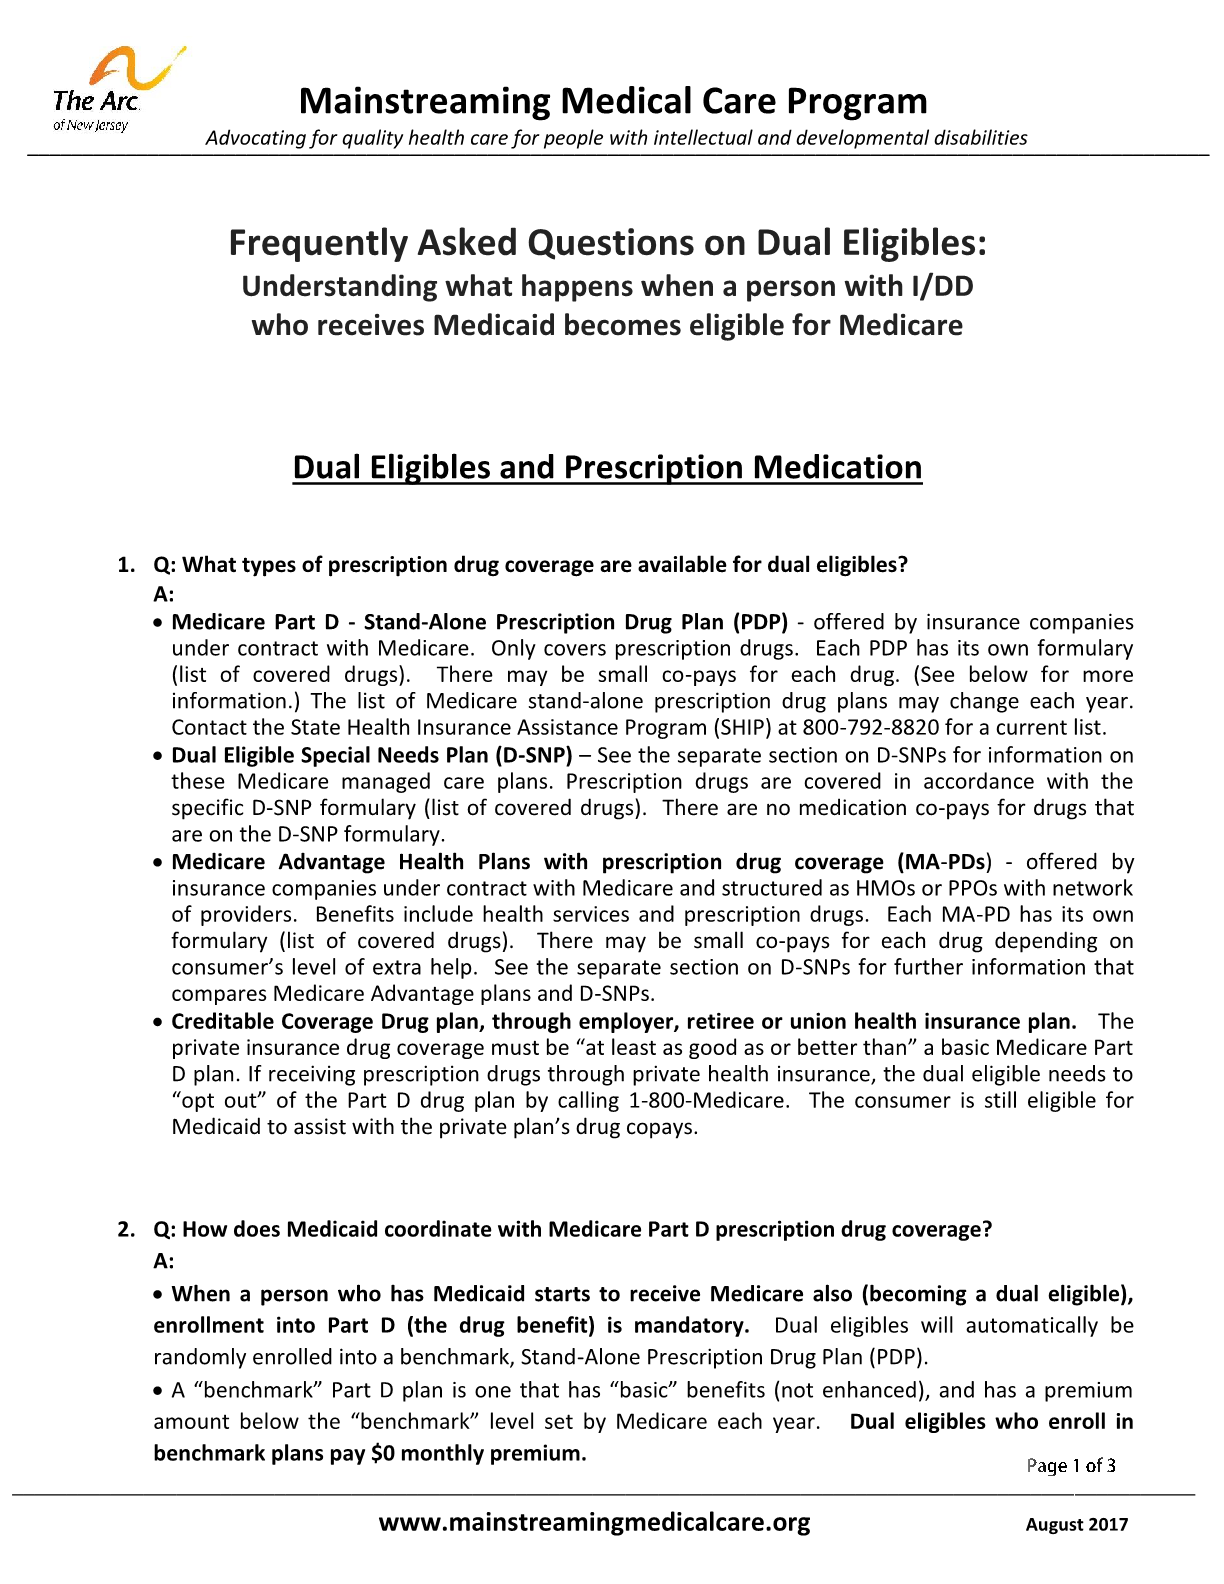 FAQ on Dual Eligibles: Understanding what happens when a person with I/DD who receives Medicaid becomes eligible for Medicare - Dual Eligibles and Prescription Medication